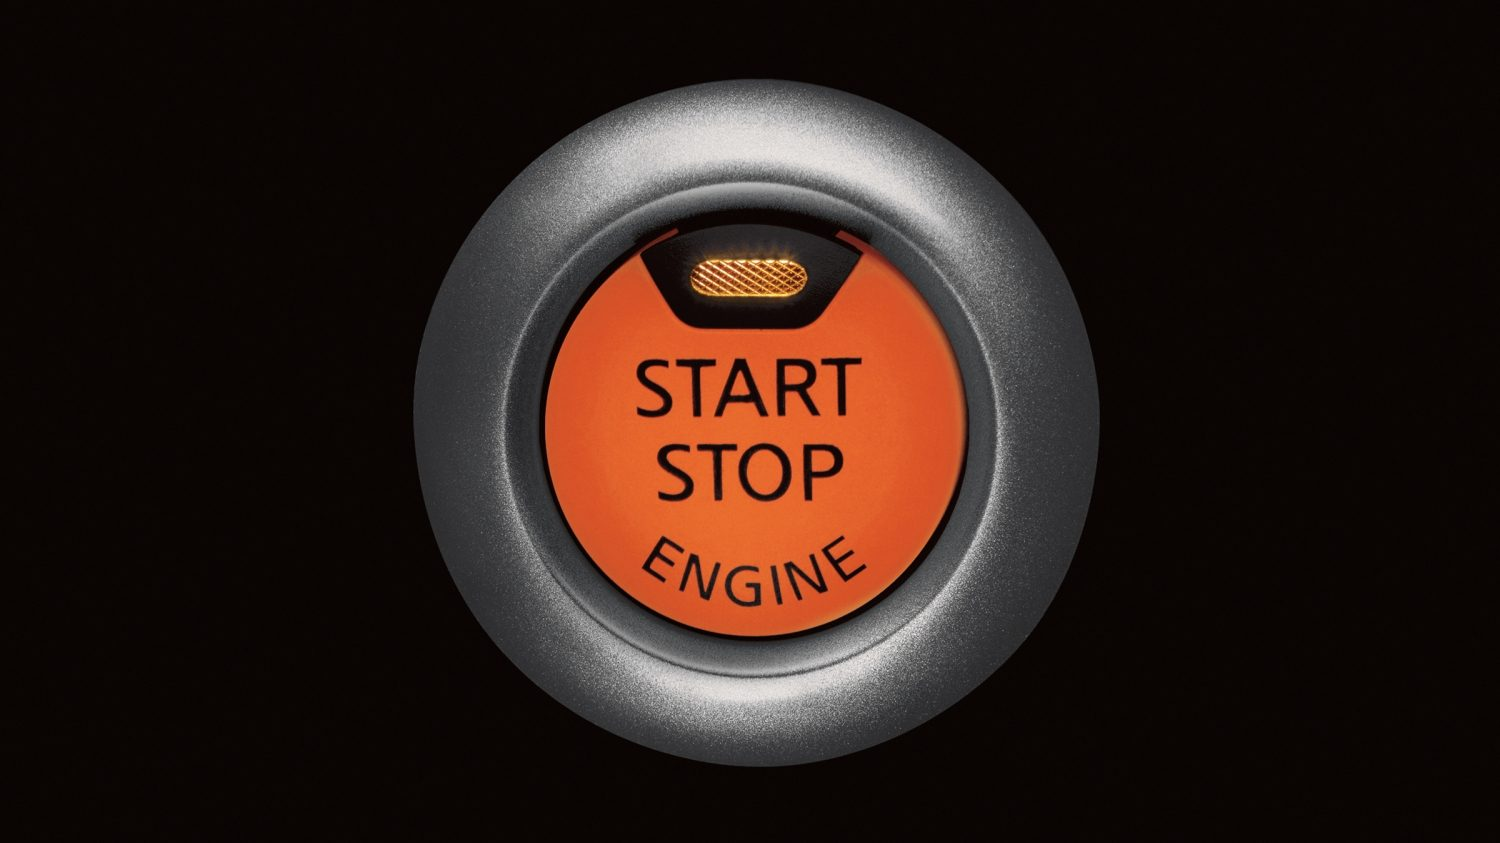 Start/Stop Engine start button